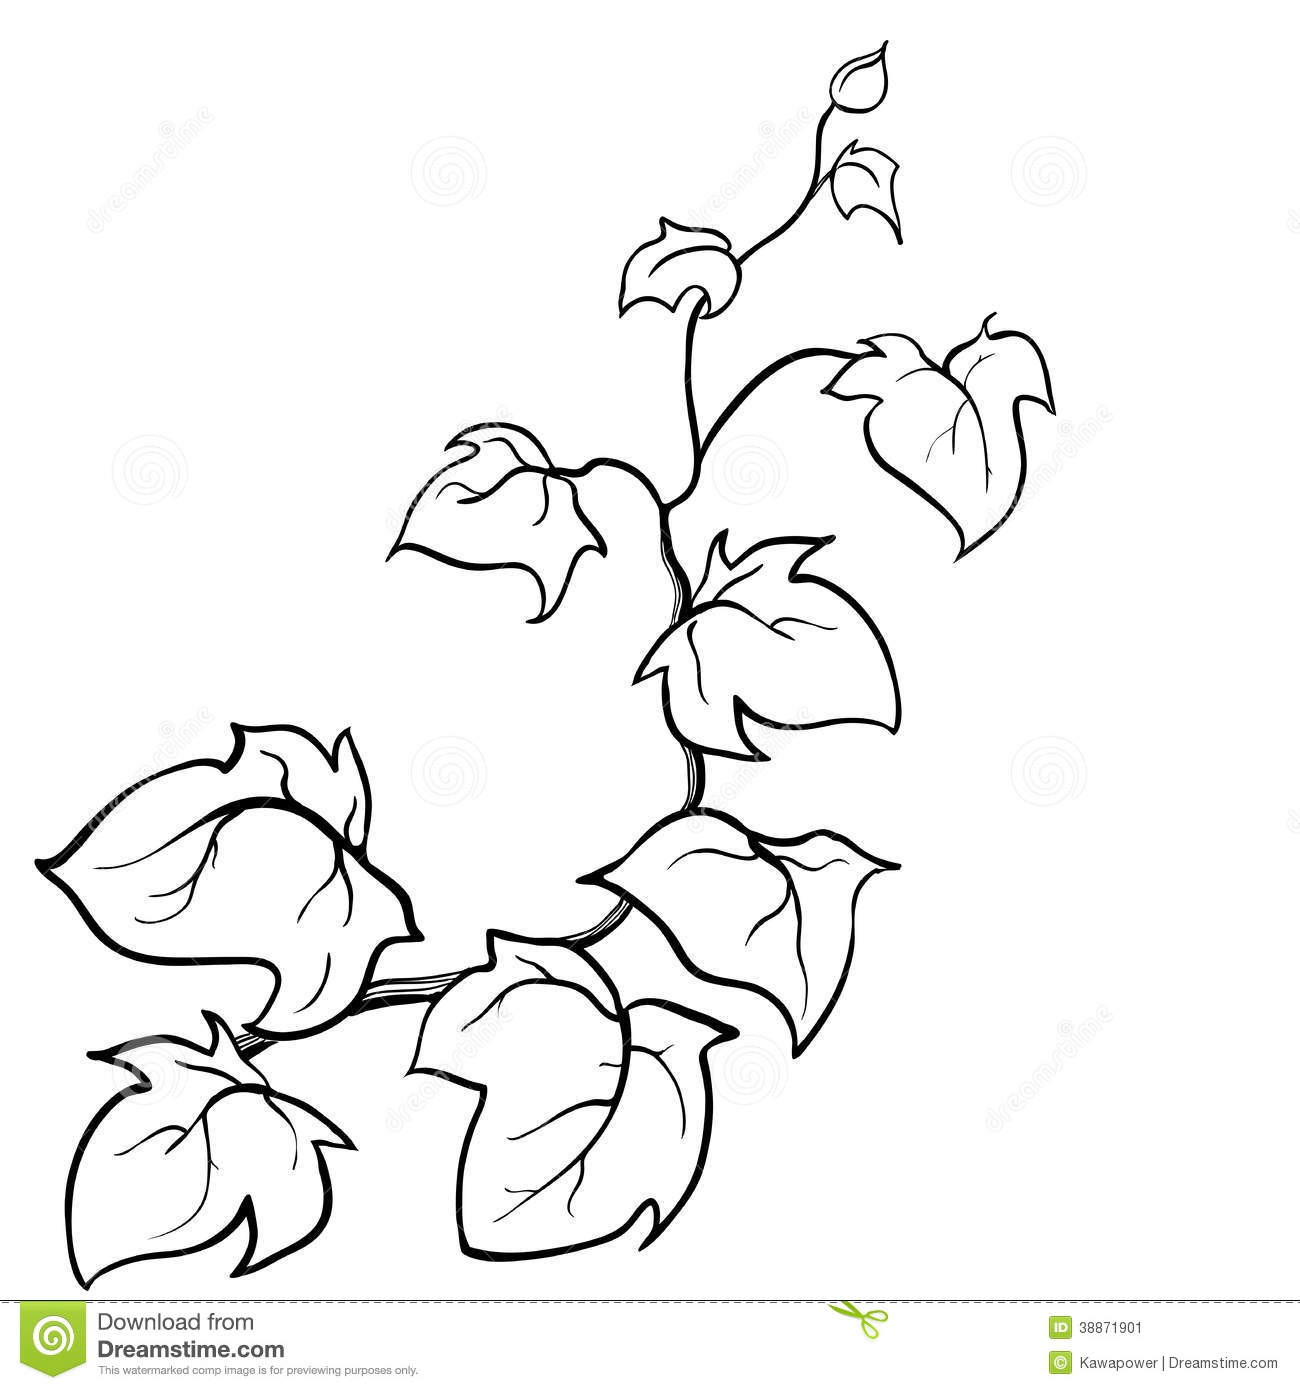 Creeping plant clipart Clipground